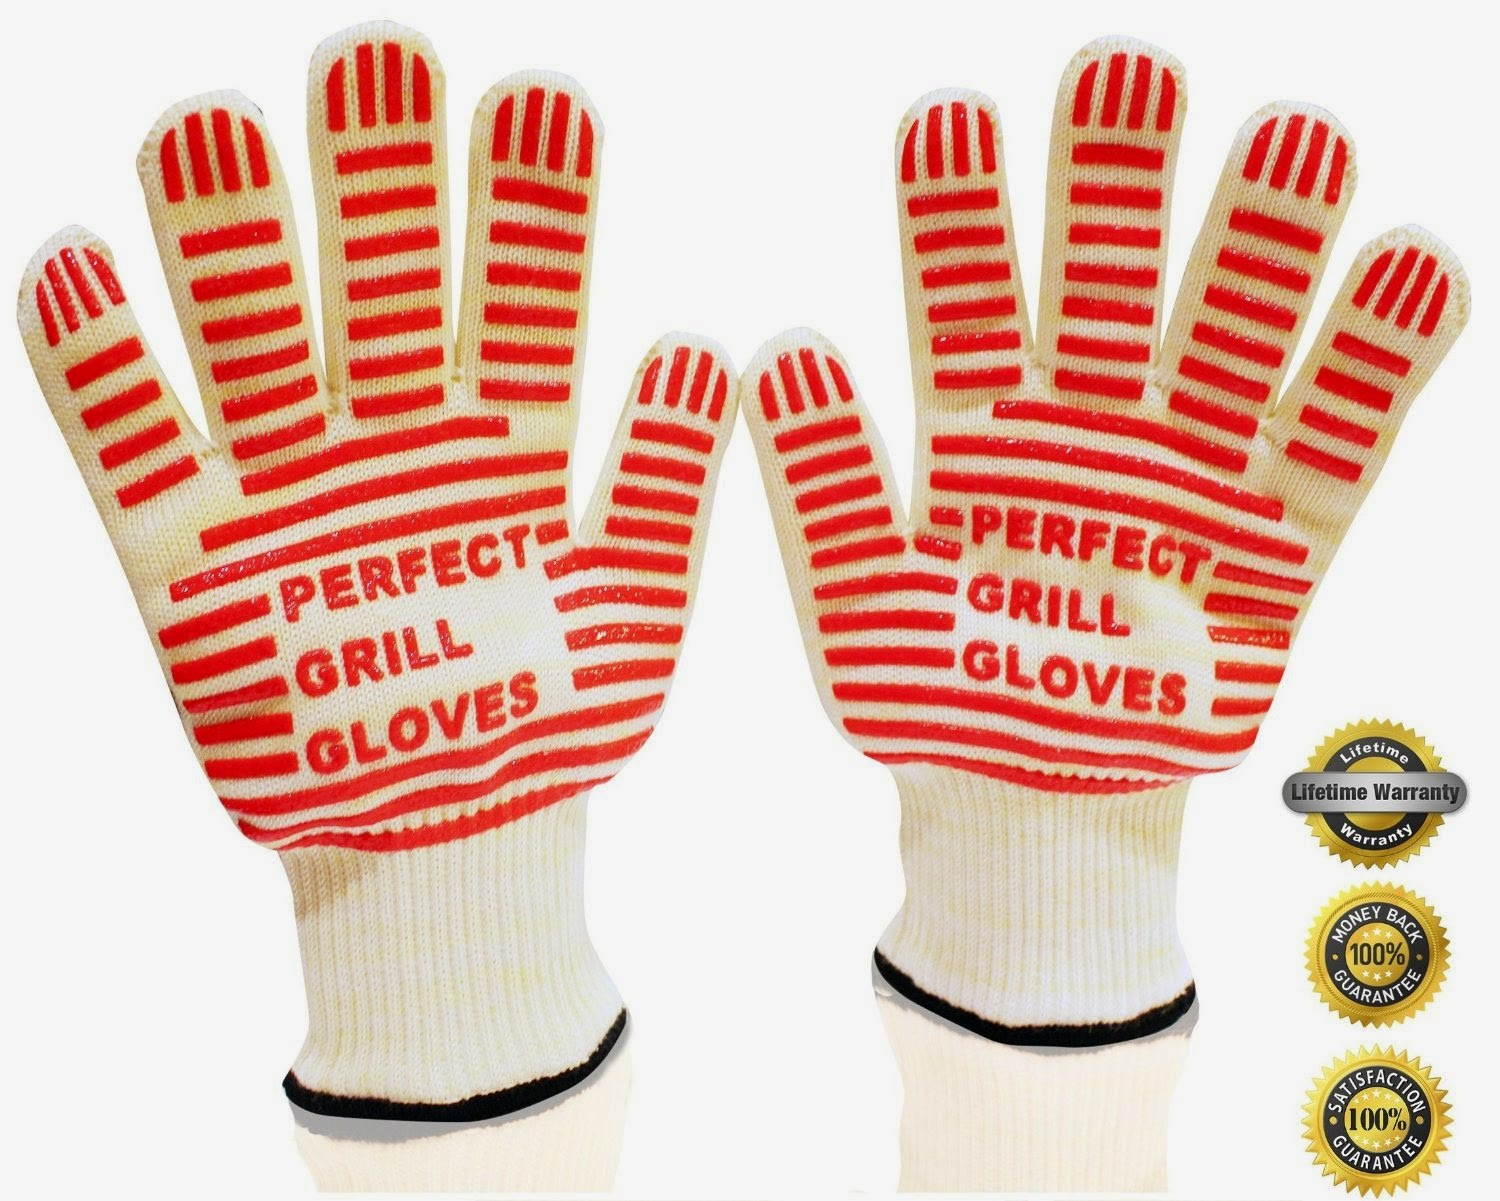 http://ramblingsofcassie.blogspot.com/2014/12/perfect-grill-and-oven-gloves.html